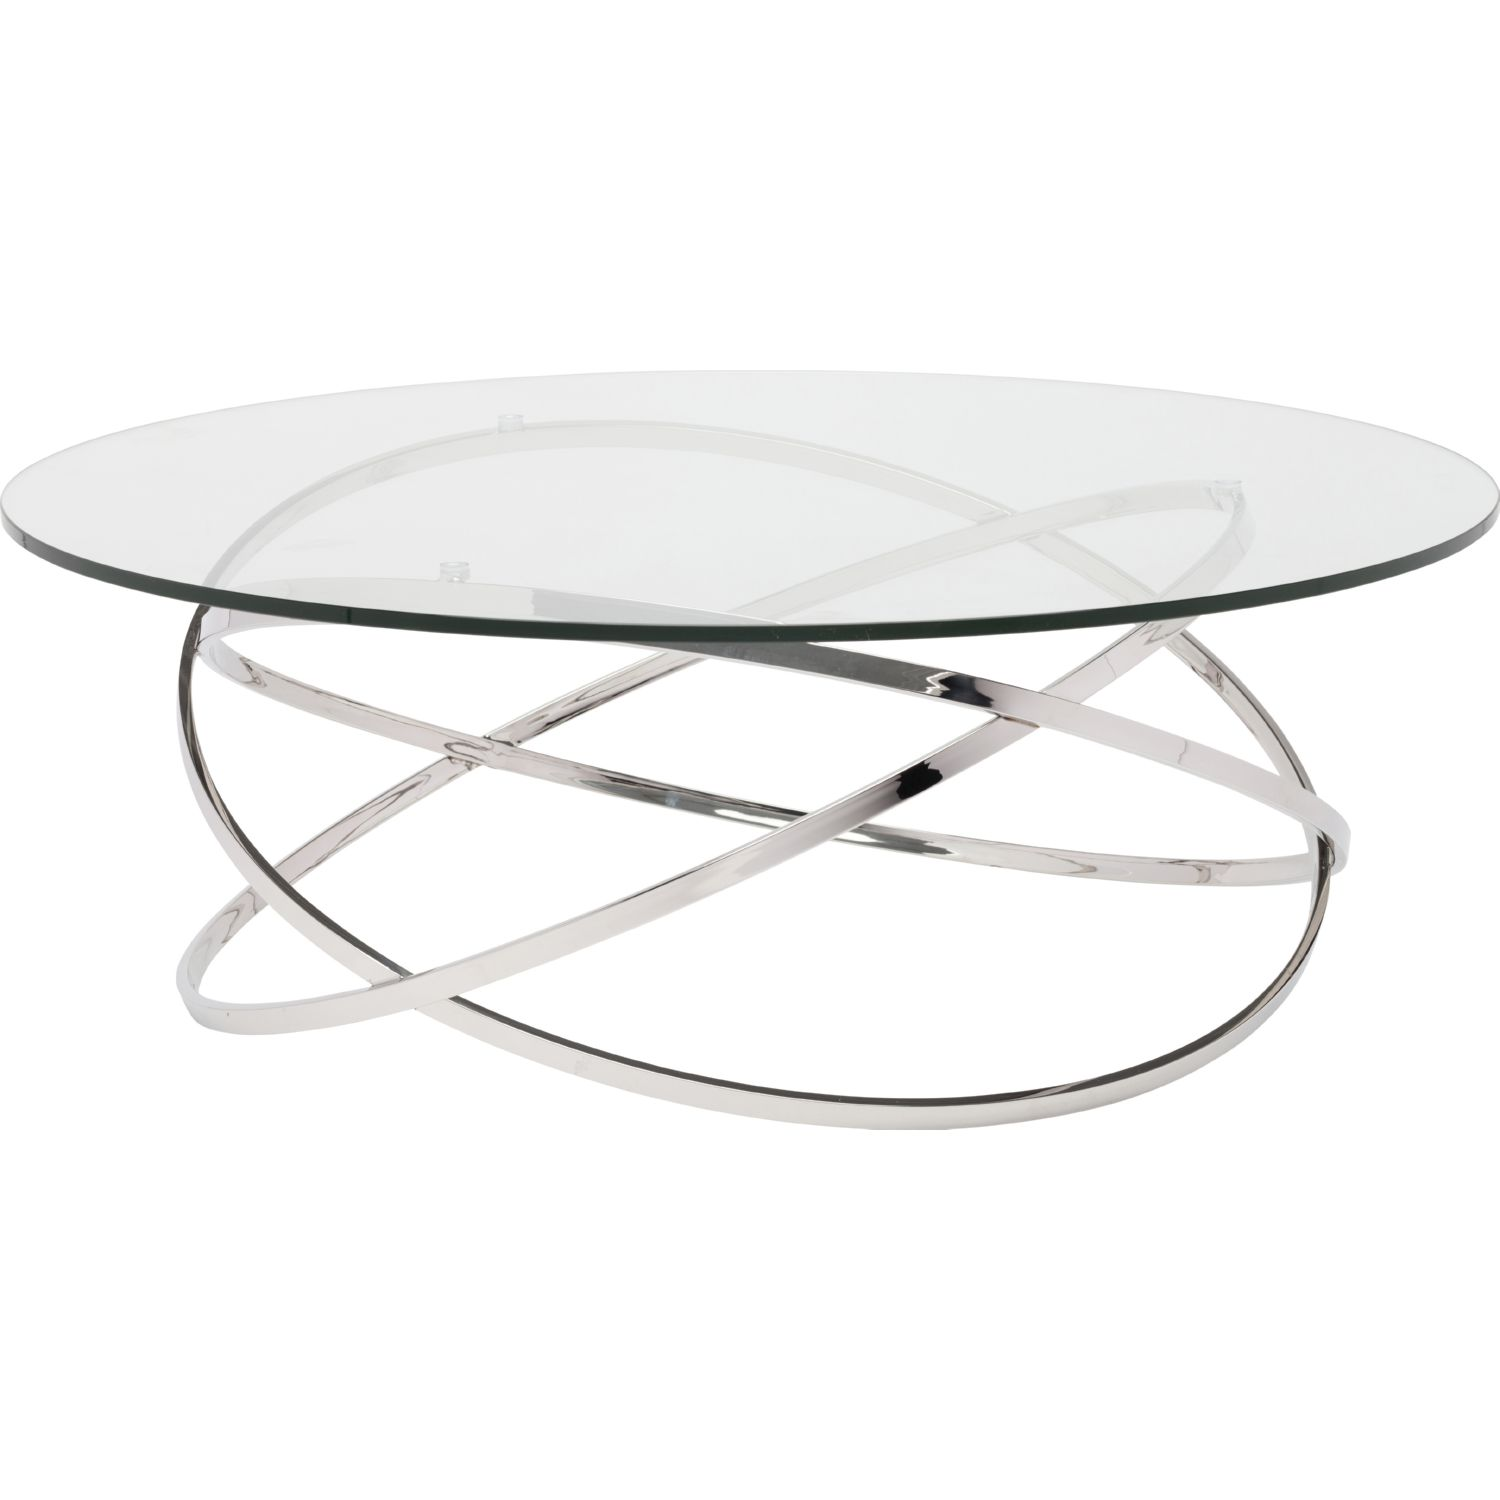 Nuevo Modern Furniture Hgtb405 Corel Coffee Table In Clear Glass On Stainless Steel Rings